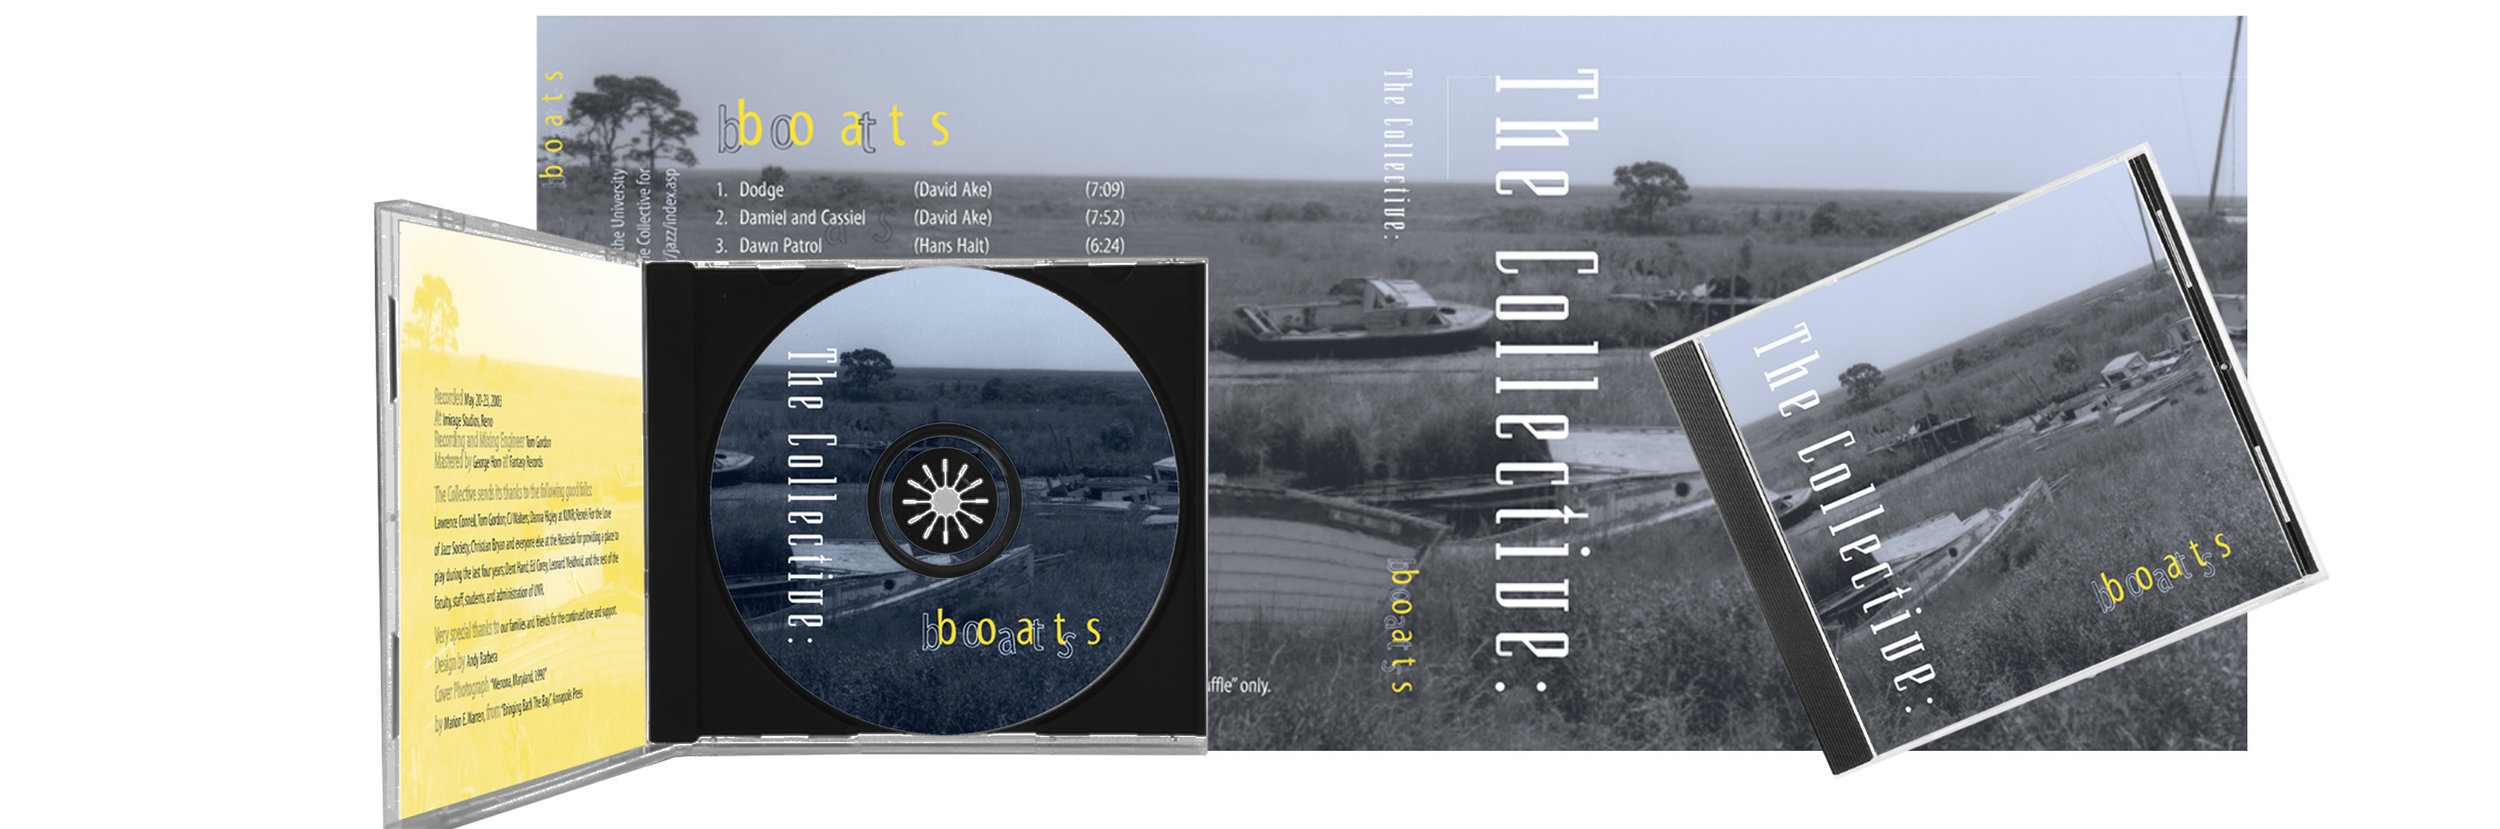 boats disc layout 955.jpg